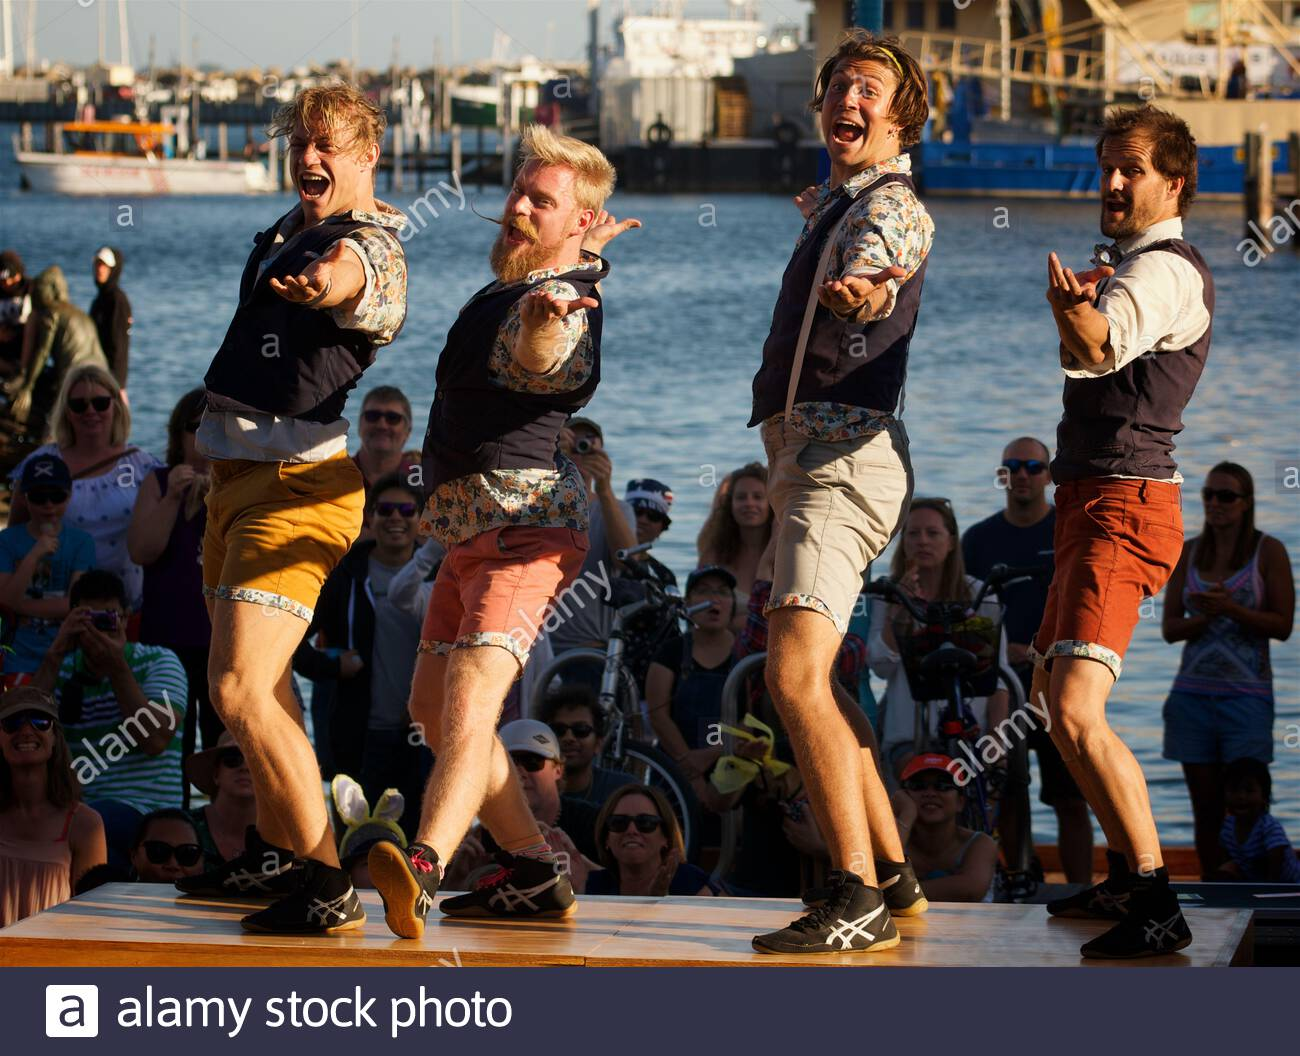 canadian-circus-artists-quatuor-stomp-at-the-2018-fremantle-international-street-arts-festival-western-australia-2ATM8B8.jpg